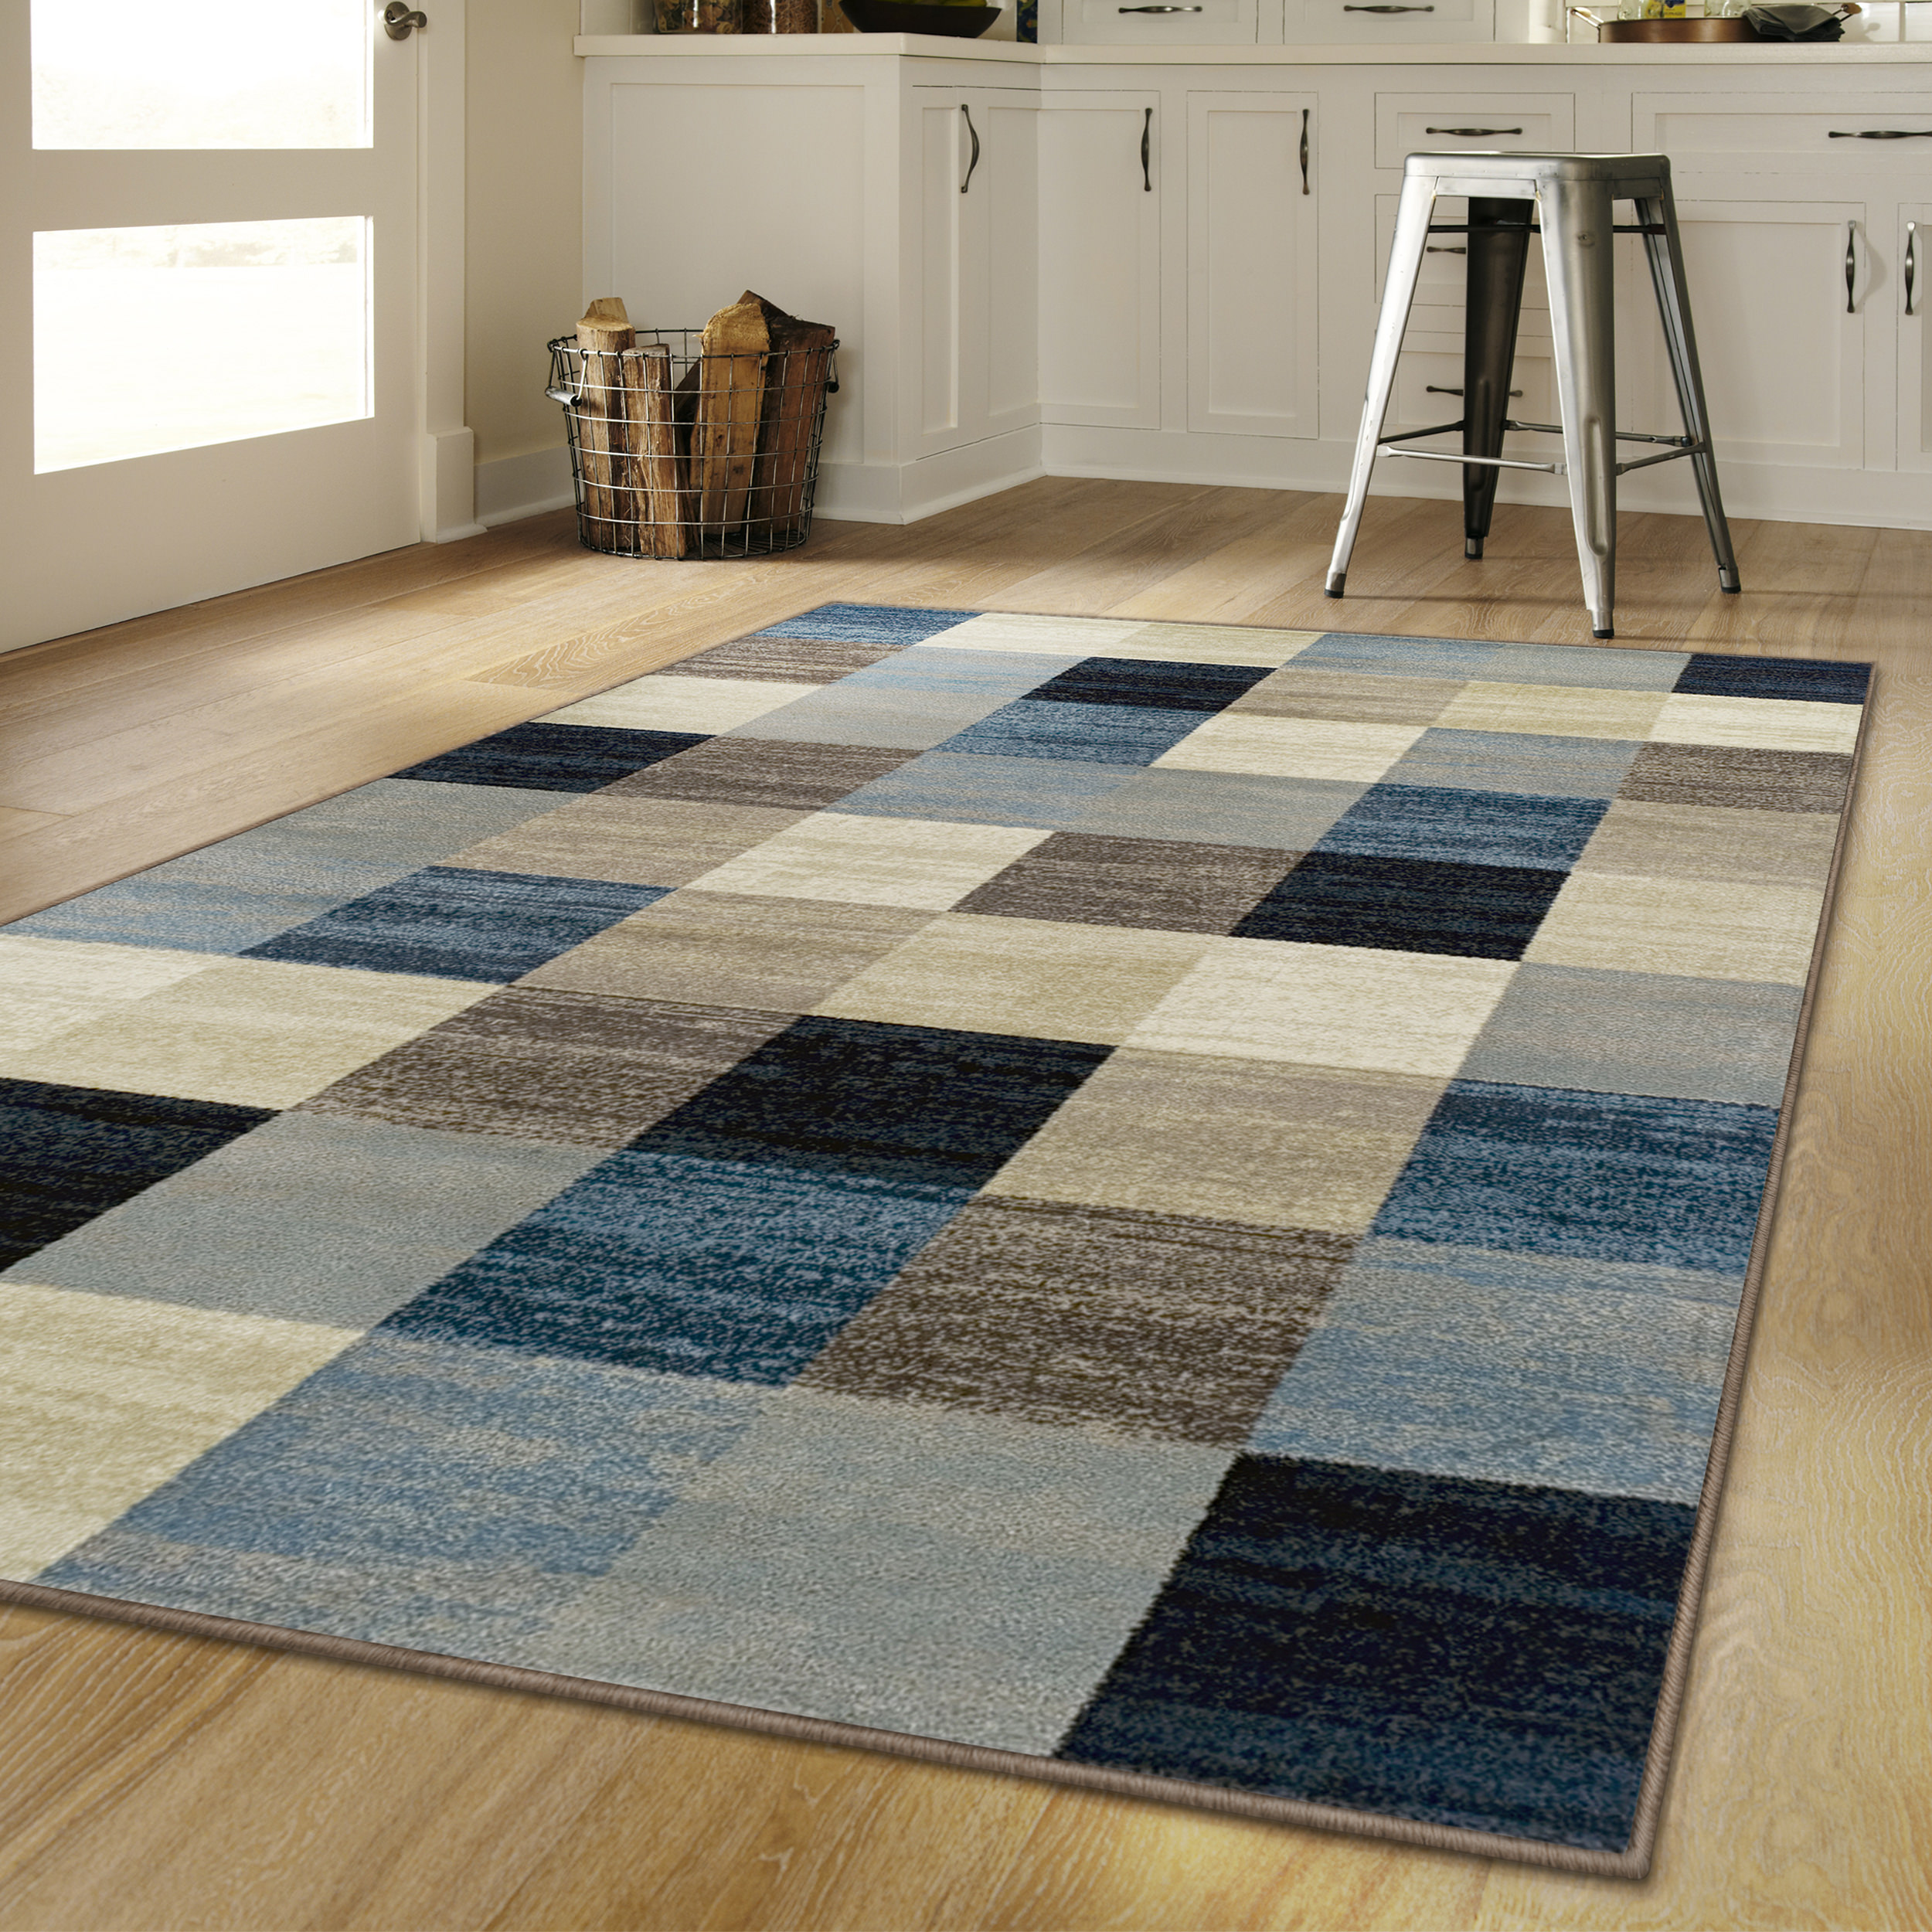 "Superior's 10mm Pile Height with Jute Backing, Durable, Fashionable and Easy Maintenance, Rockaway Collection Area Rug, 2'7"" x 8' Runner - Multi Color"